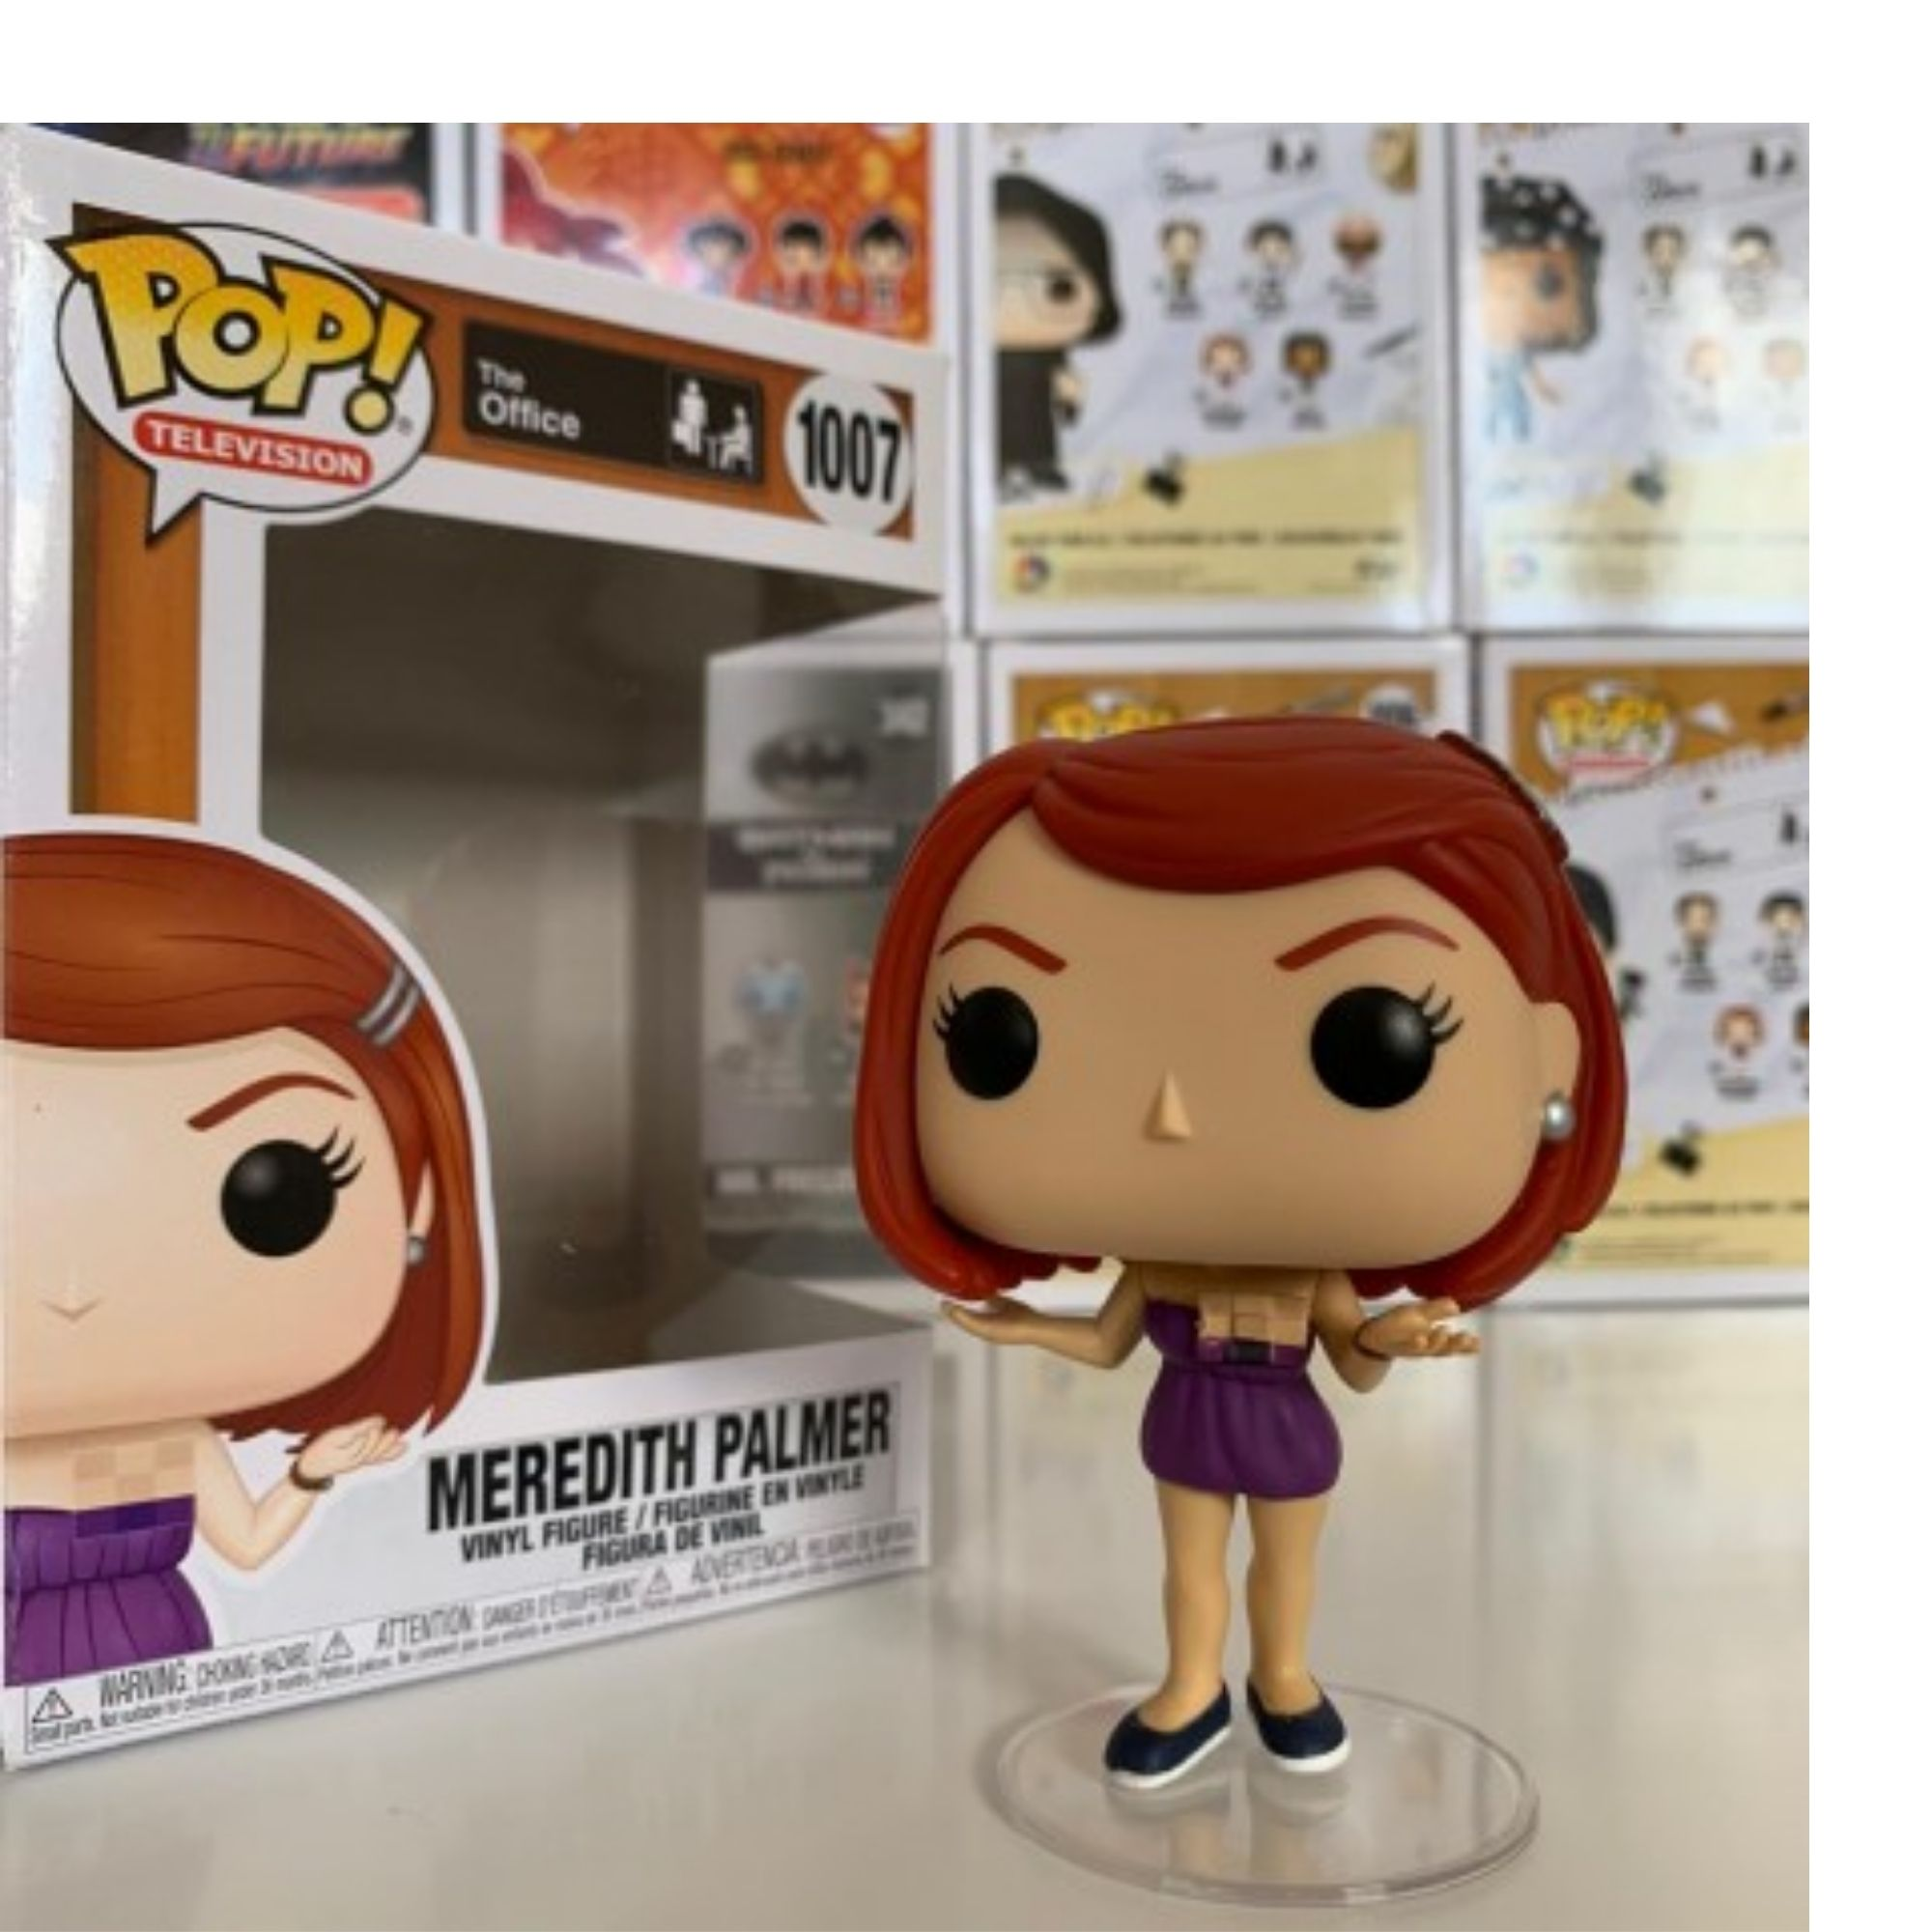 Meredith Palmer The Office Funko Pop #1007  - Game Land Brinquedos